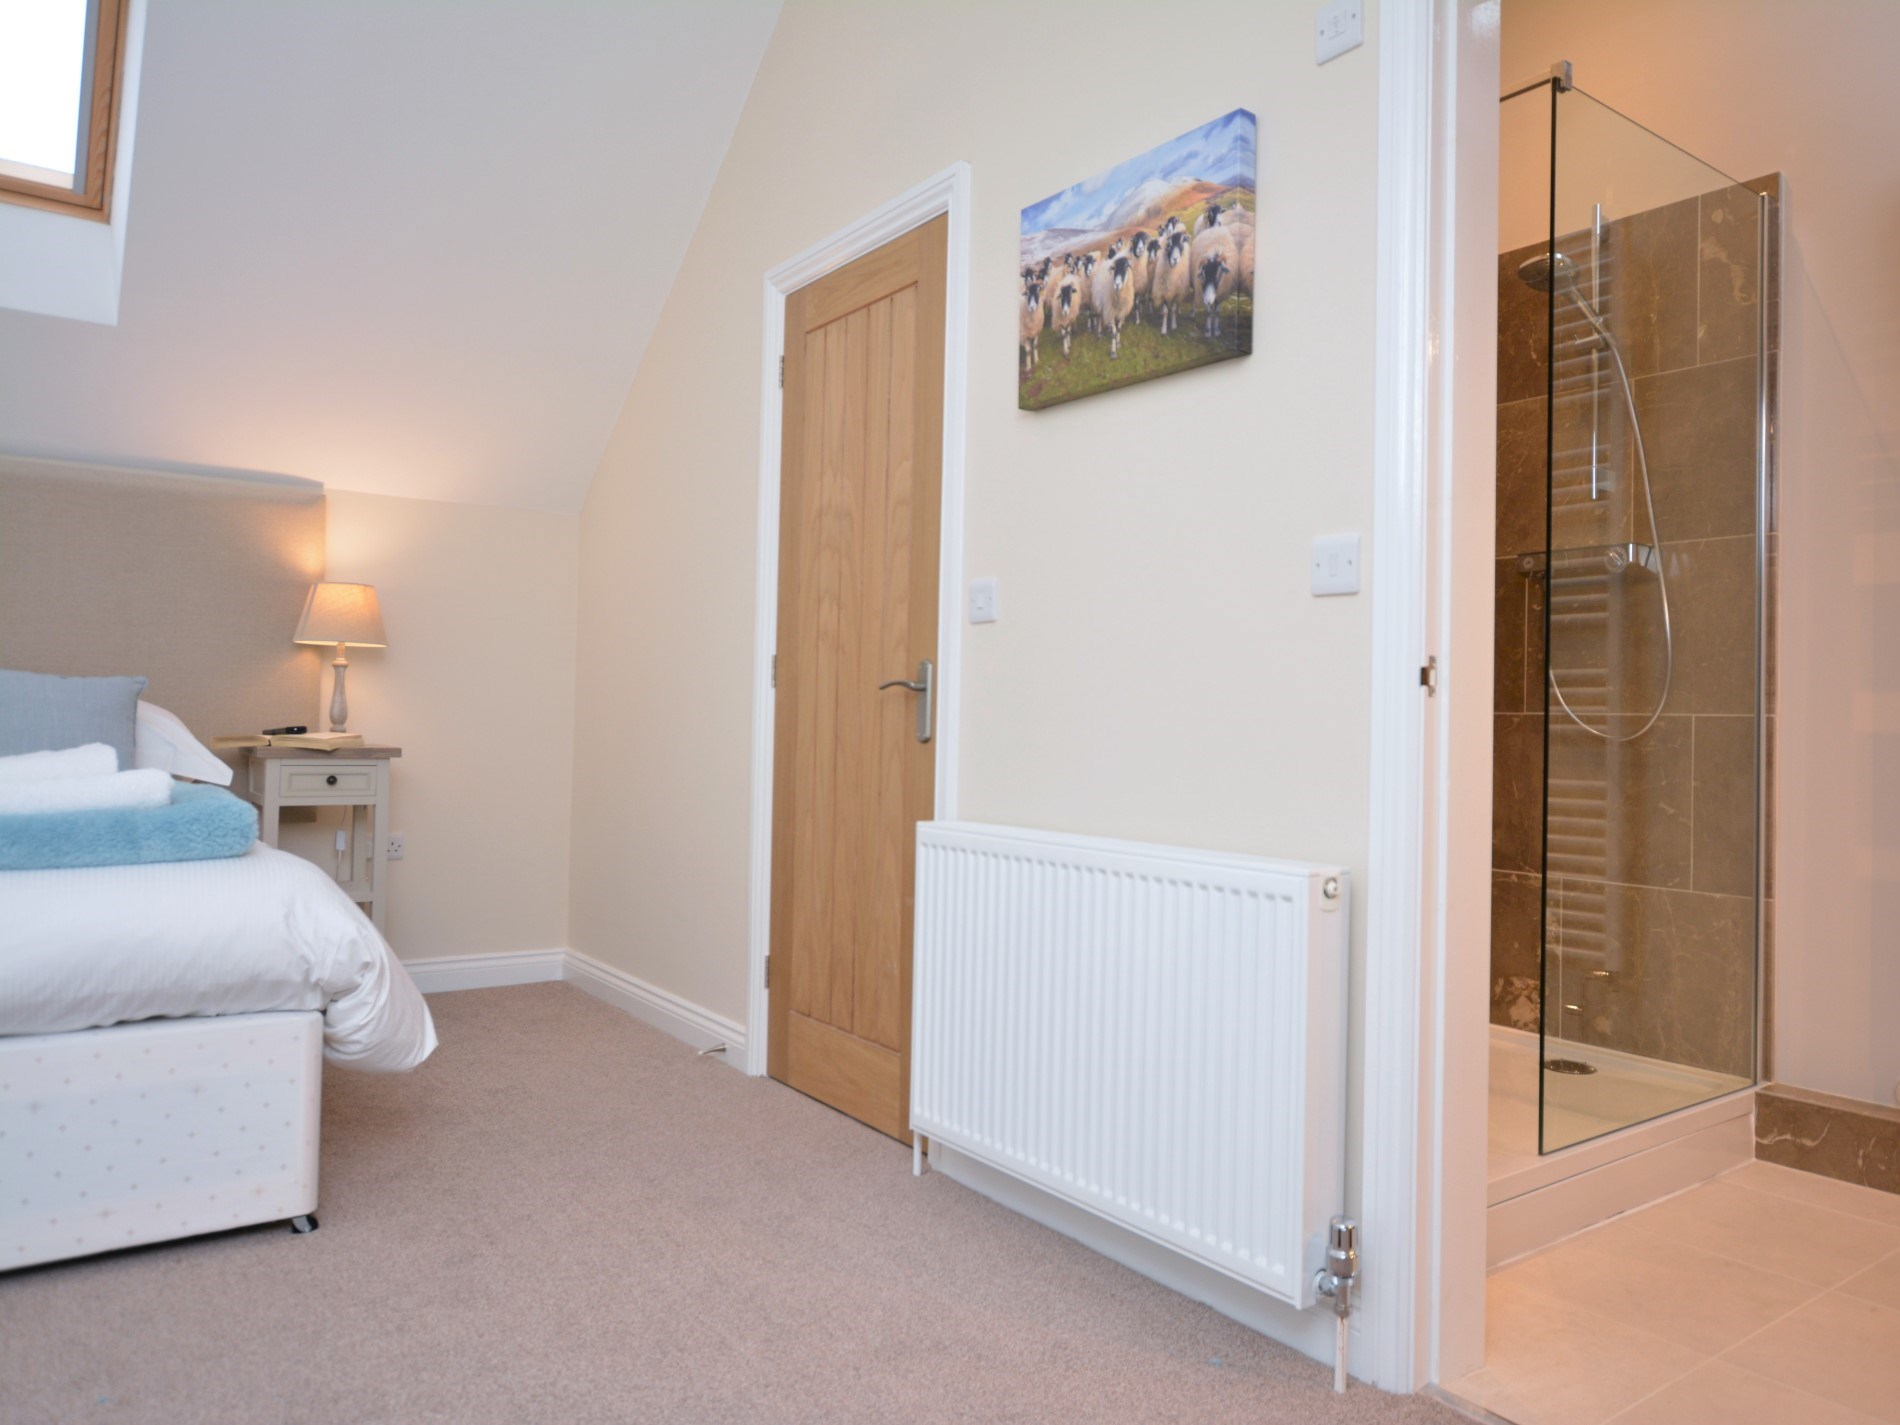 2 Bedroom Cottage in Thirsk, Yorkshire Dales